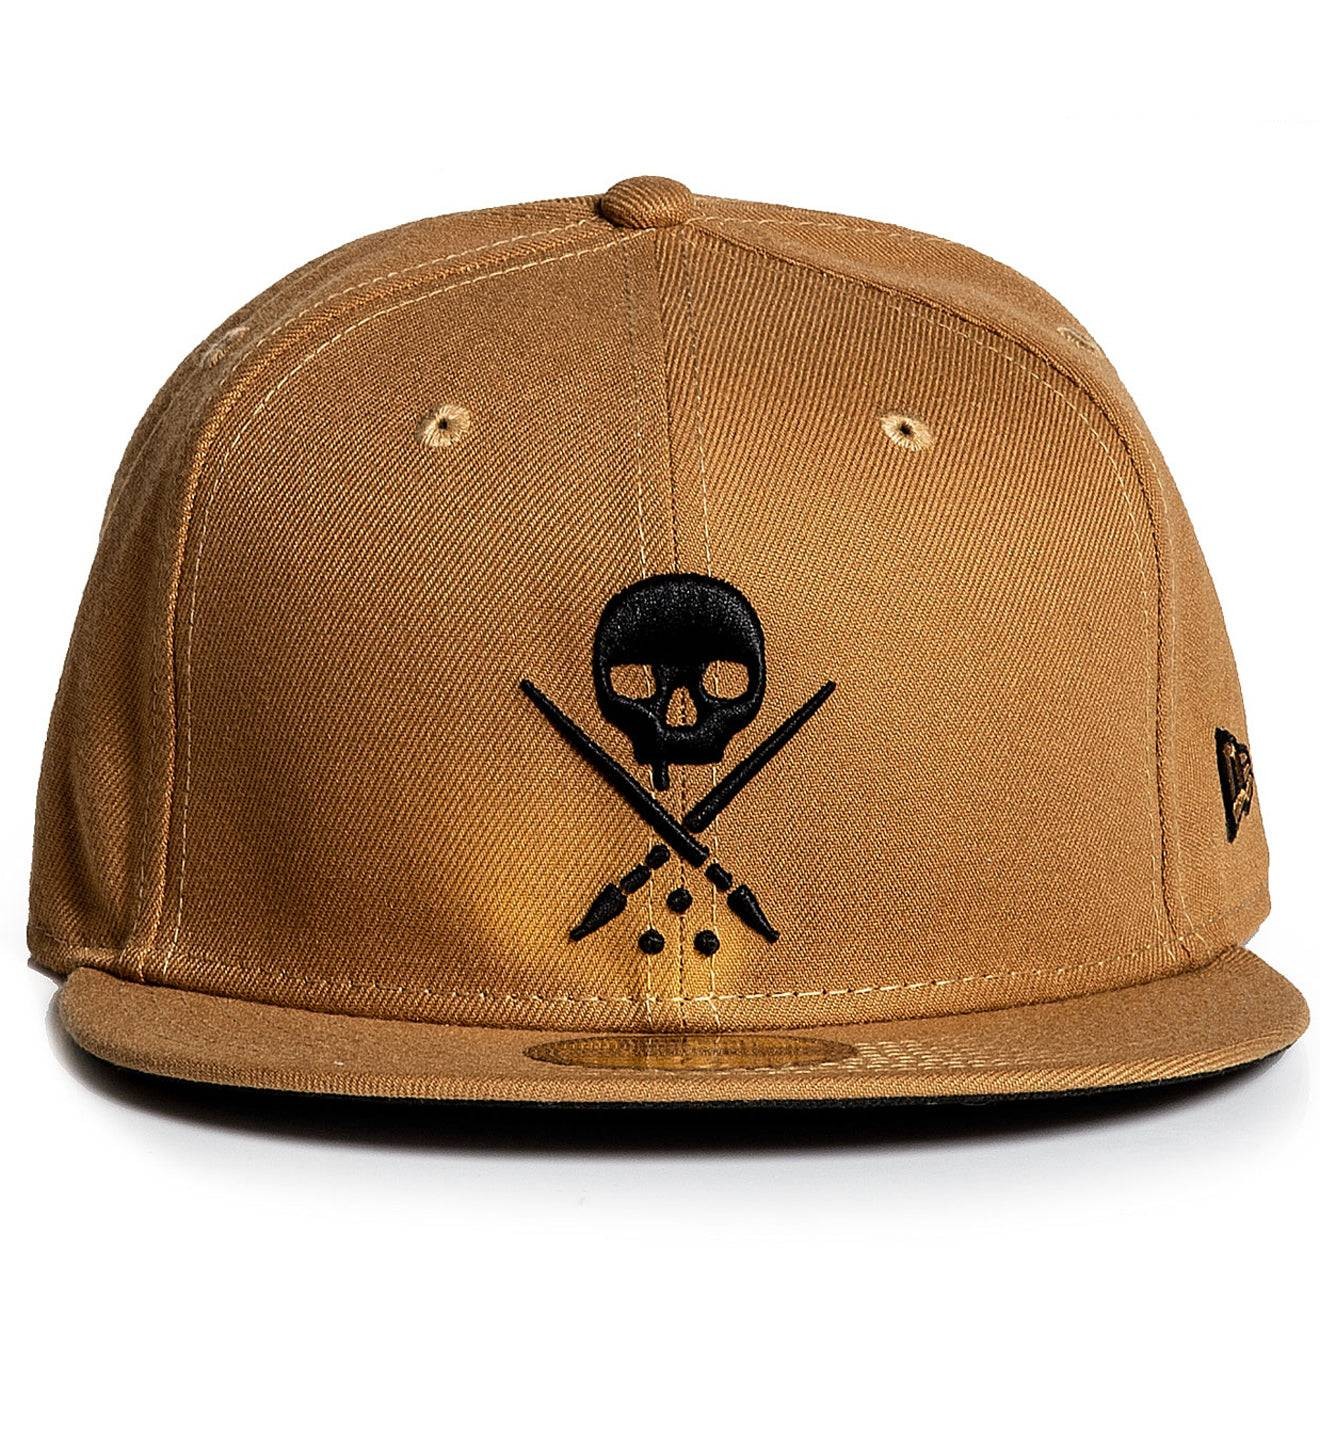 Mens Fitted Badge Wheat, WHEAT / 7